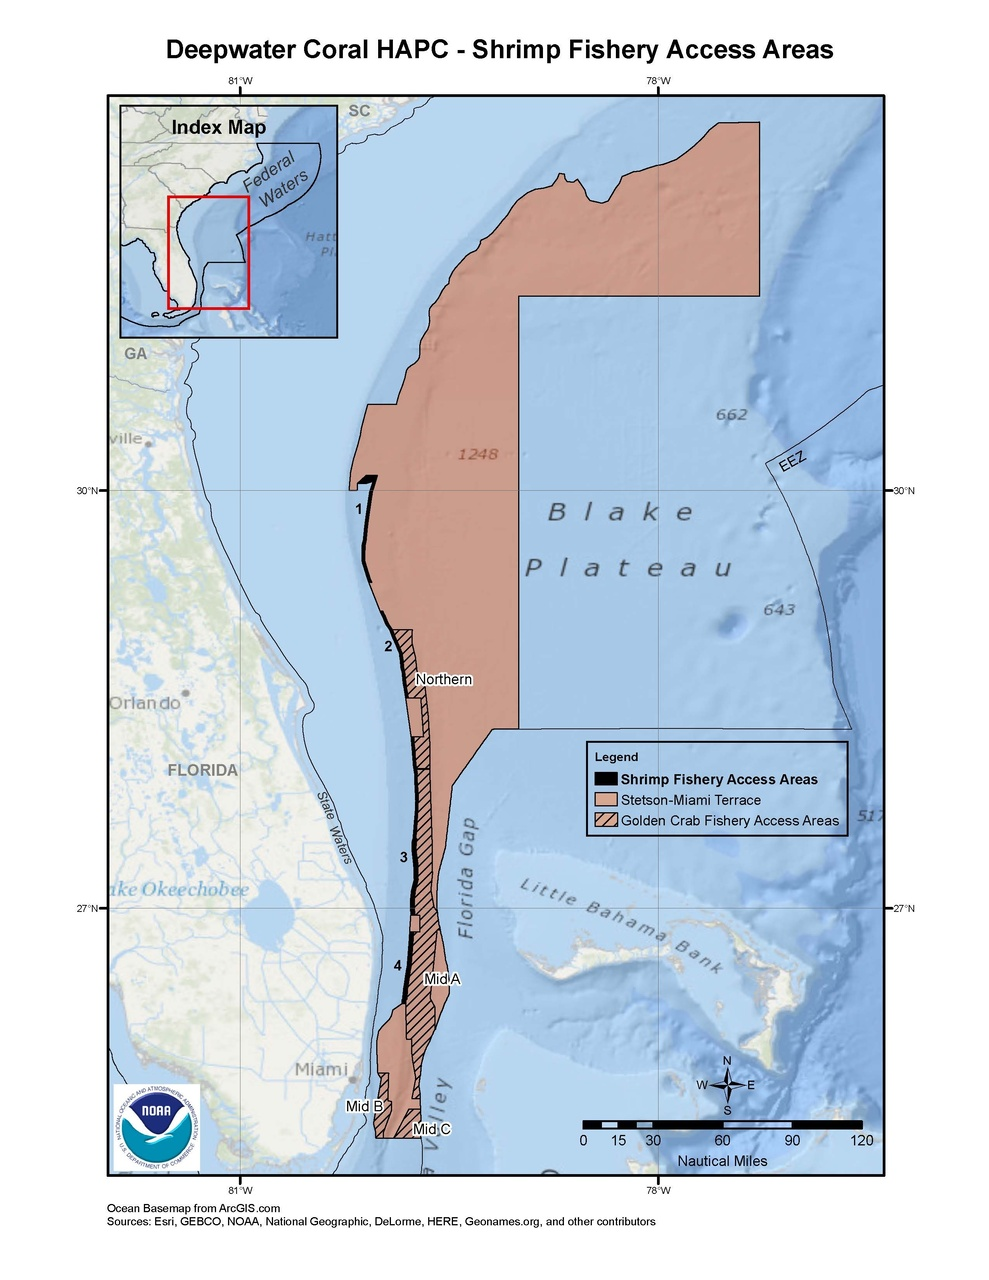 This is a map of shrimp fishery access areas in the deepwater coral HAPC in the South Atlantic Region.